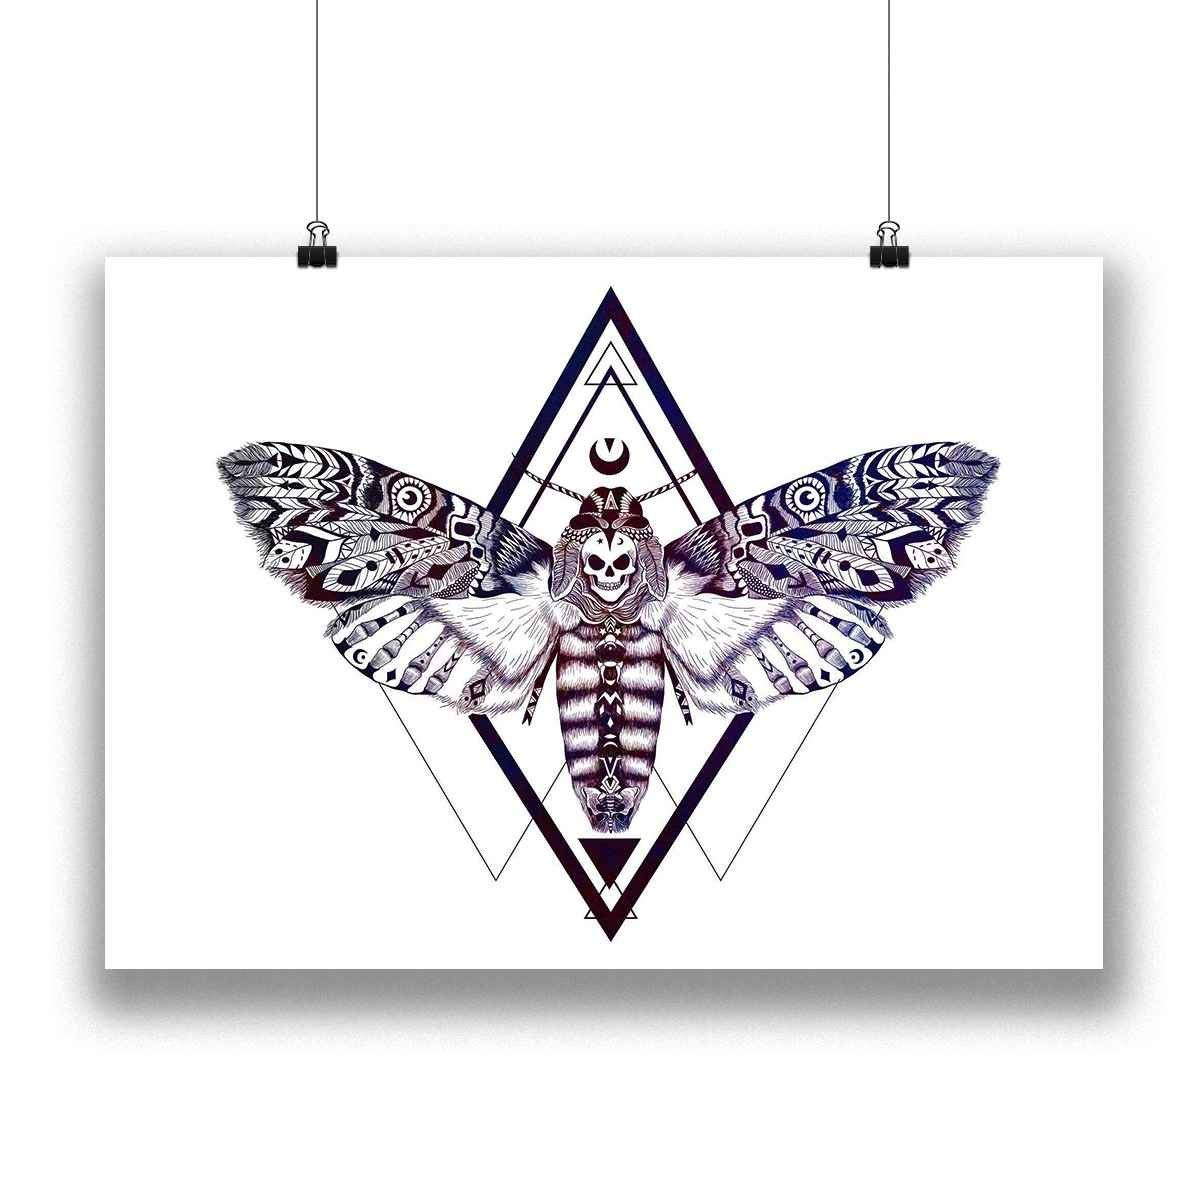 Aztec Geometric Deaths Head Hawk Moth Skull Wall Art Print Native American Totem Style Home Decor with a Galaxy Overlay on 100/% Cotton Fine Art Paper